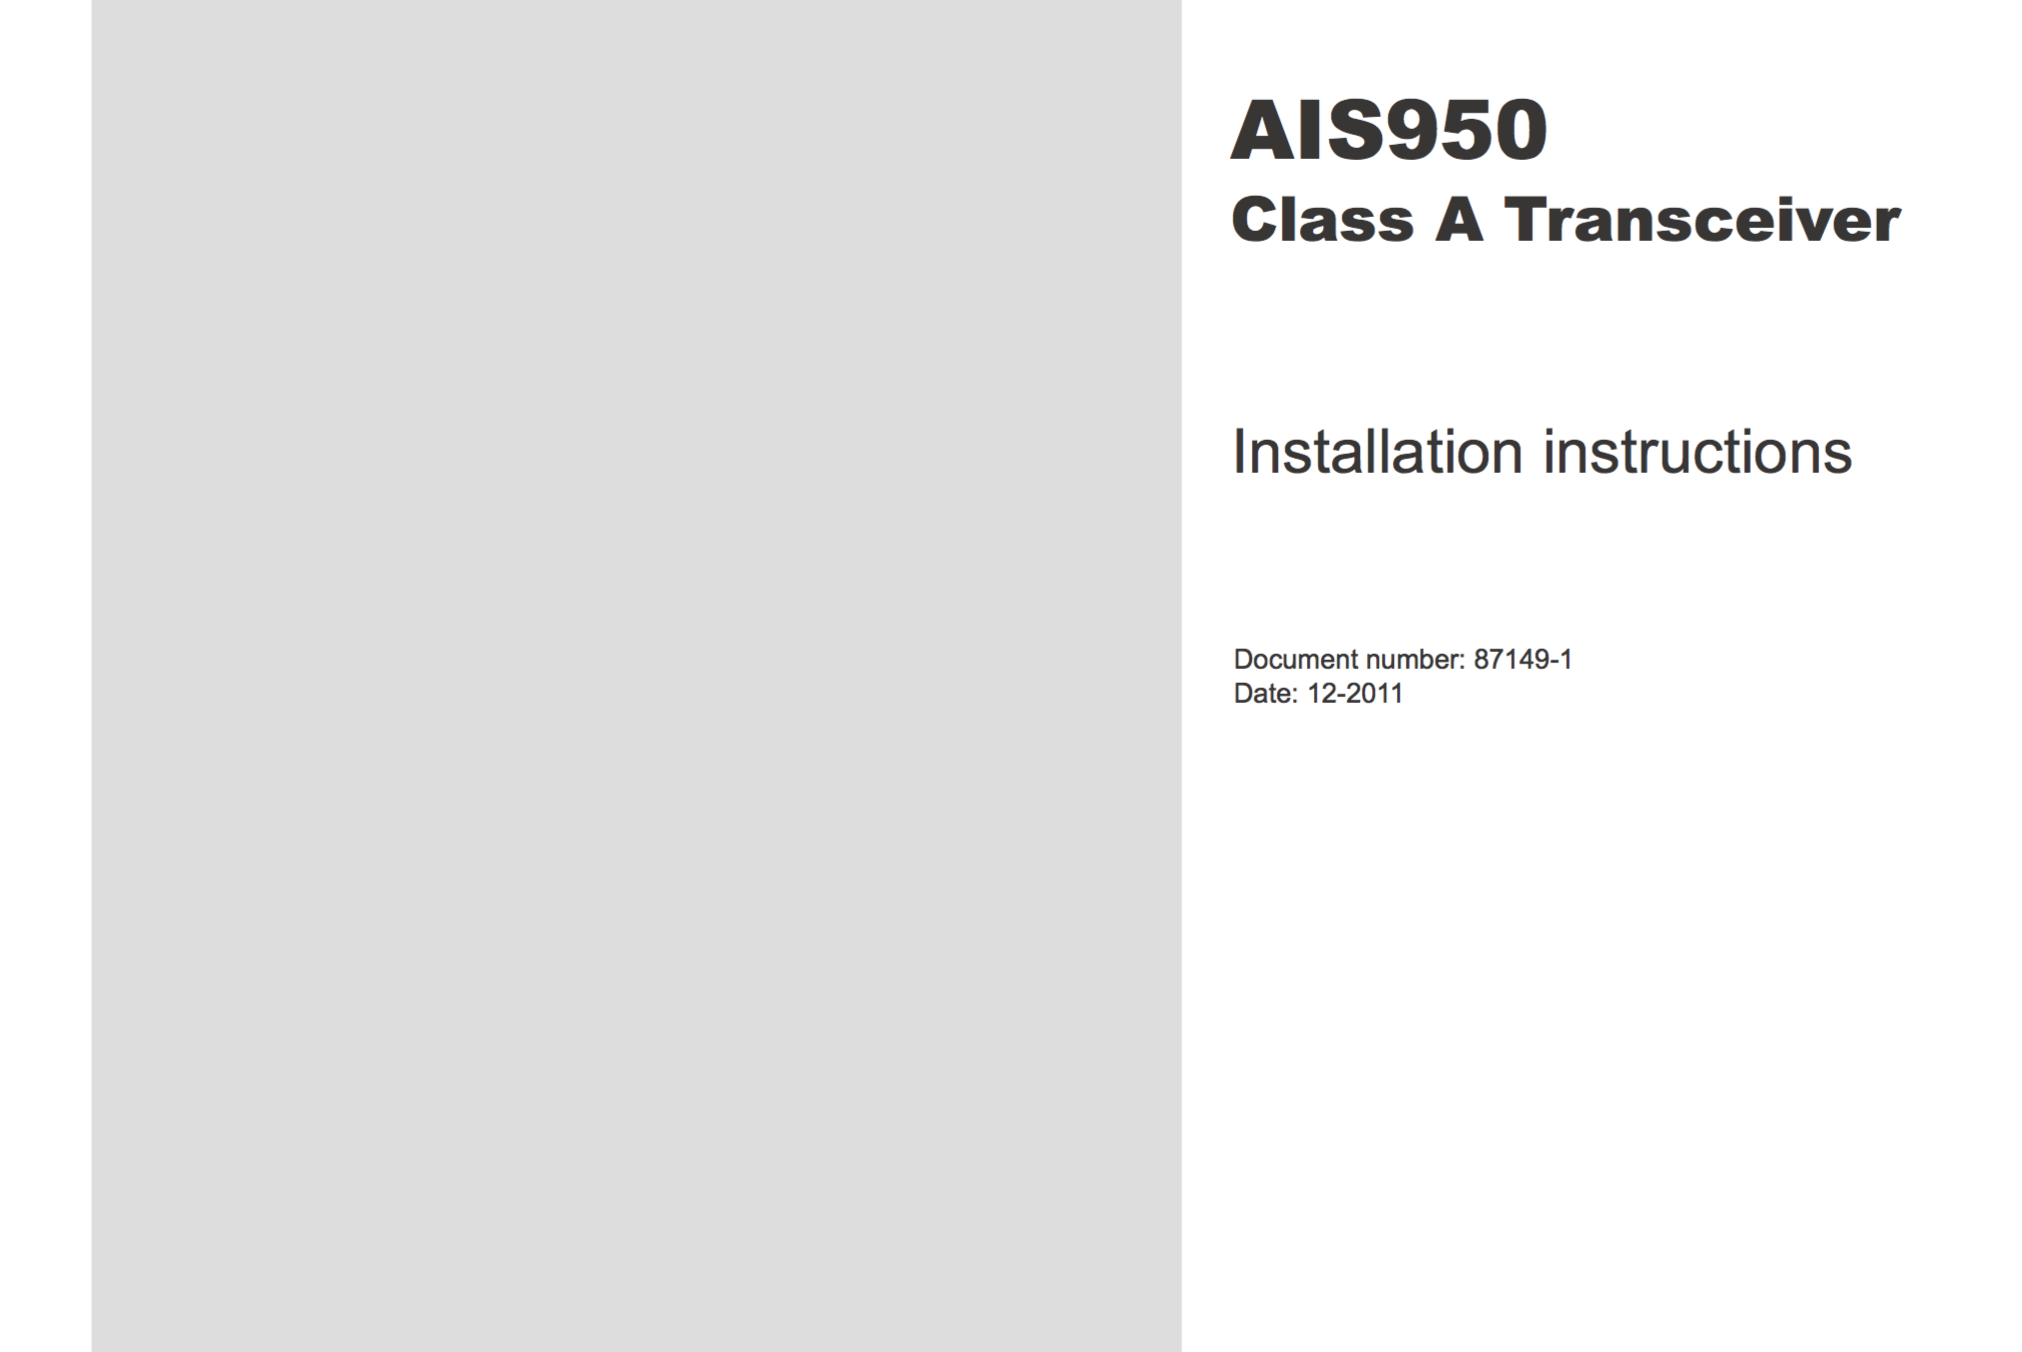 ais950 installation instructions